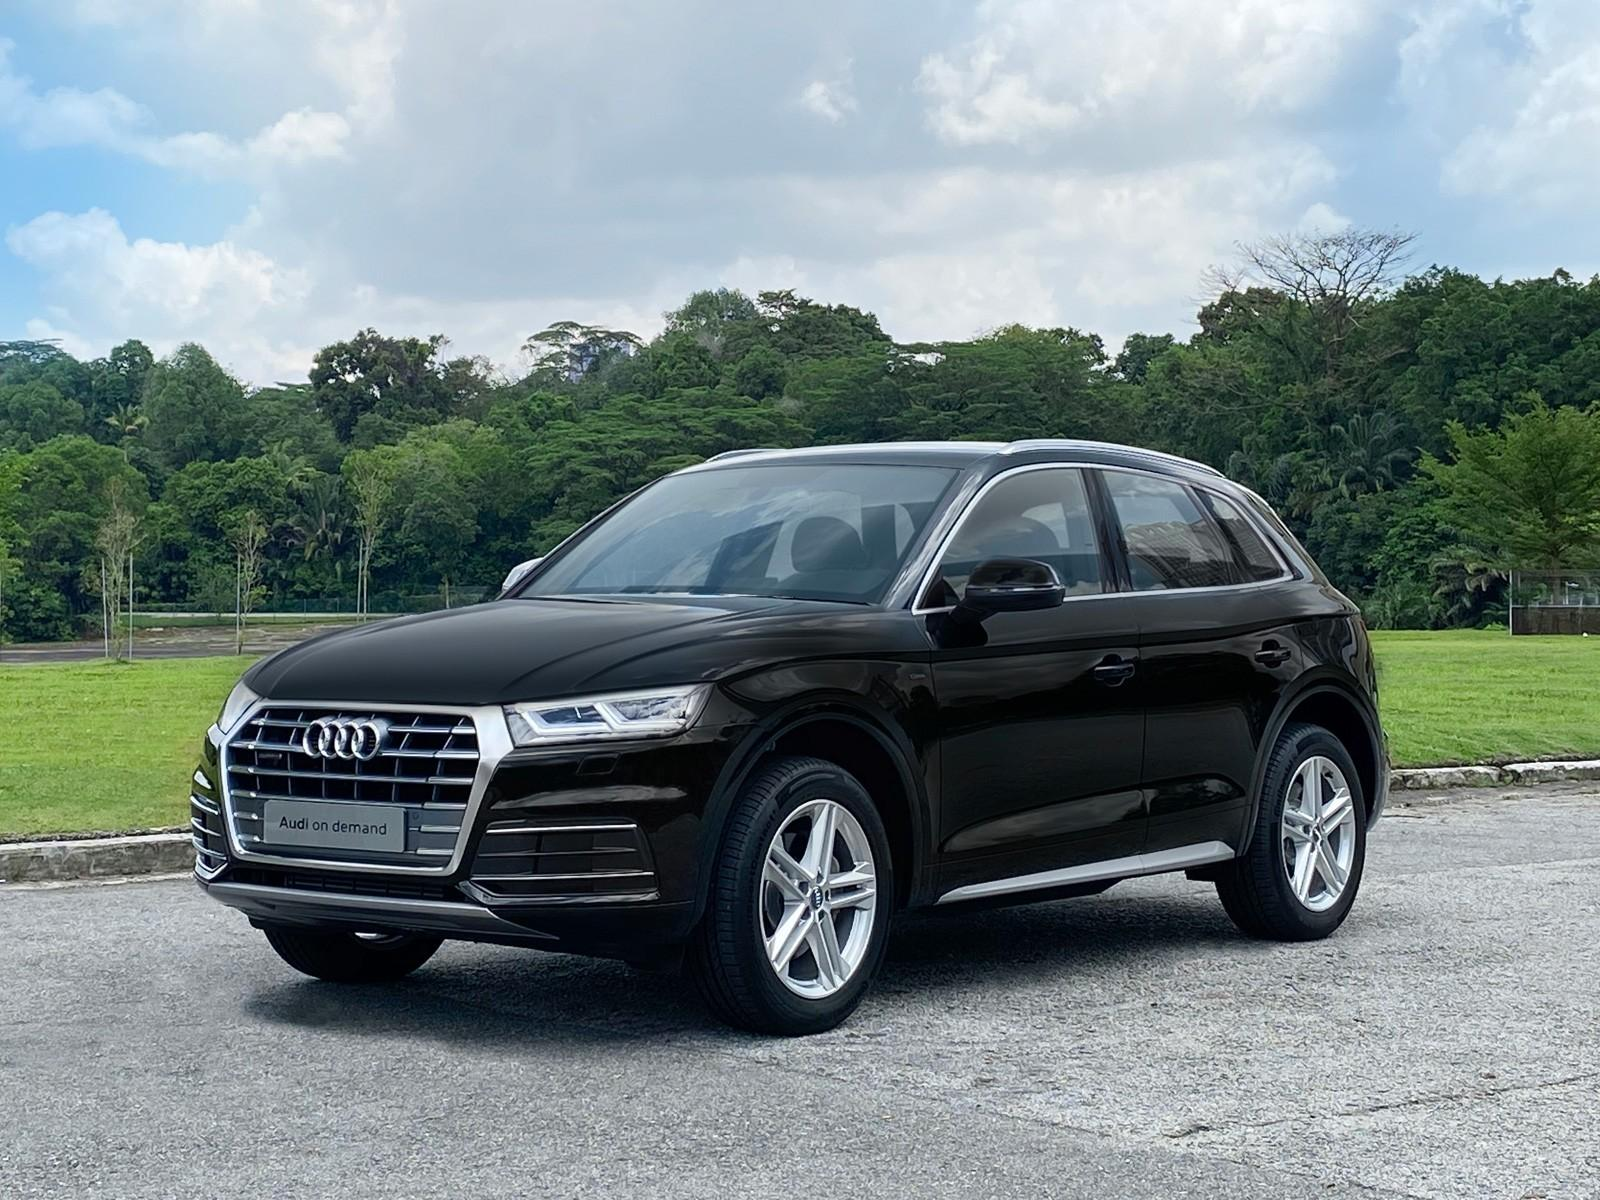 Audi Q5 Sport 2.0 TFSI Quattro S Tronic (For Rent)